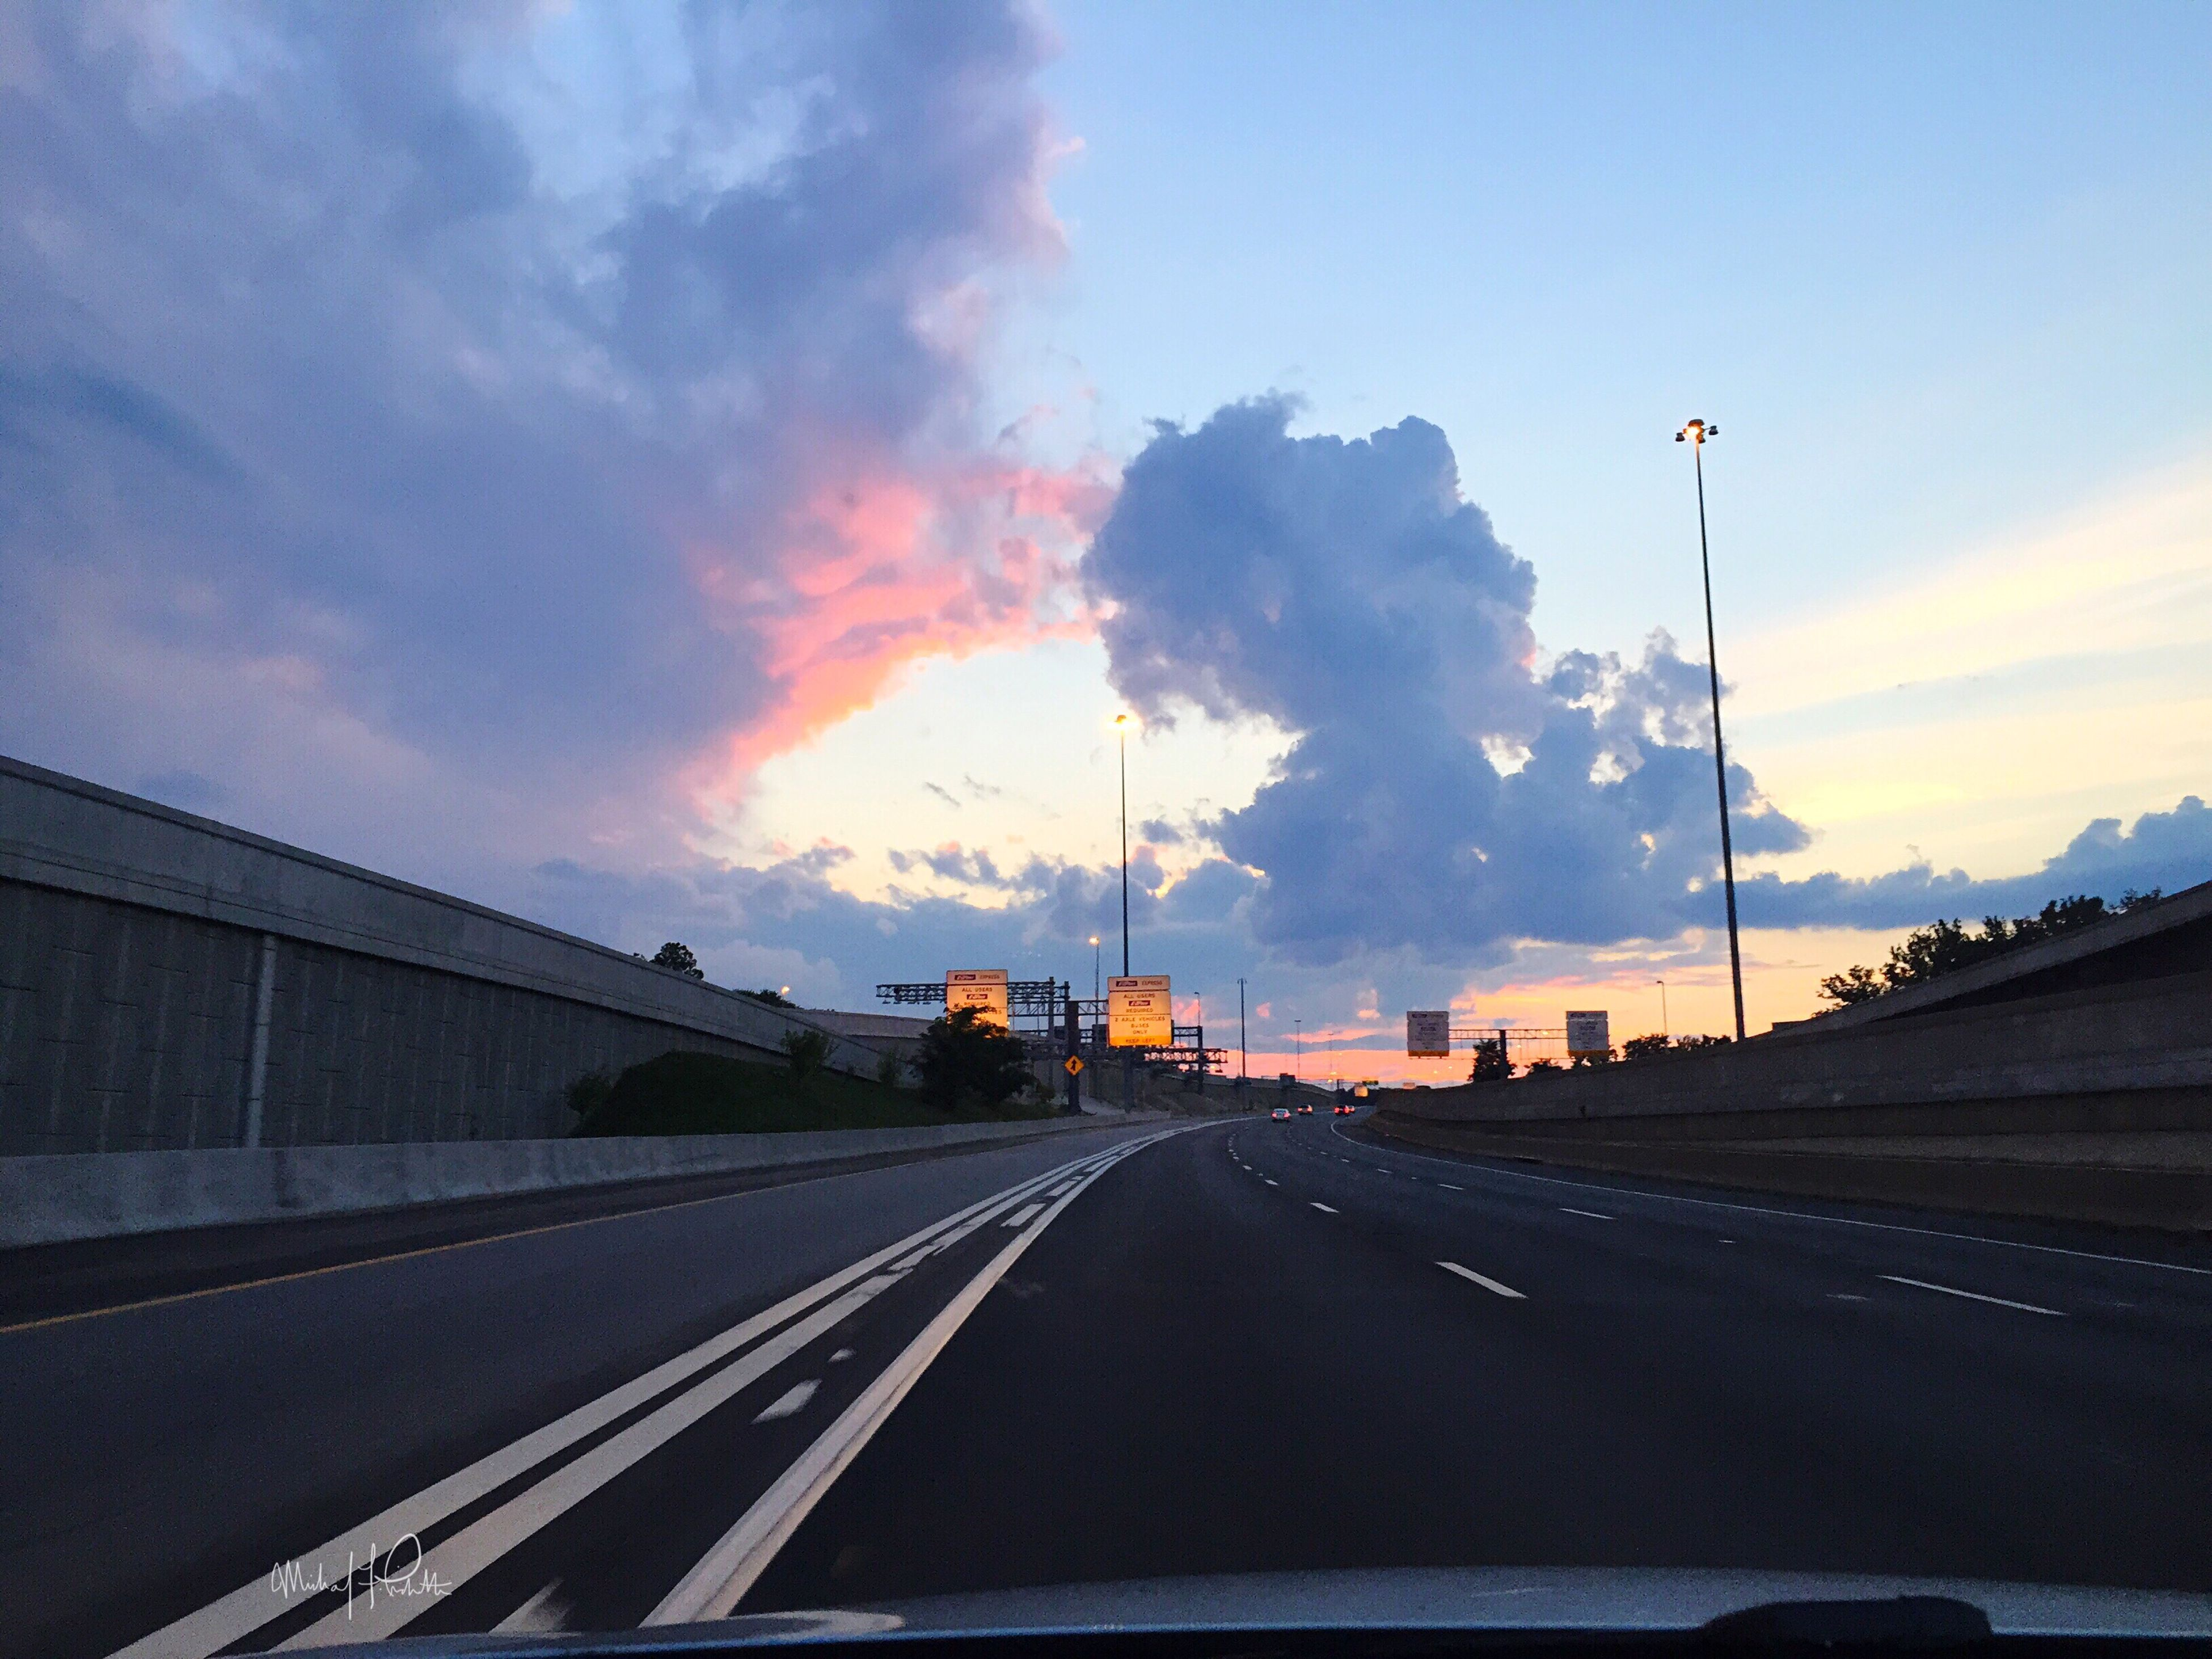 the way forward, sky, road, cloud - sky, diminishing perspective, sunset, road marking, vanishing point, cloud, cloudy, highway, outdoors, orange color, no people, dramatic sky, nature, empty, city, long, overcast, weather, blue